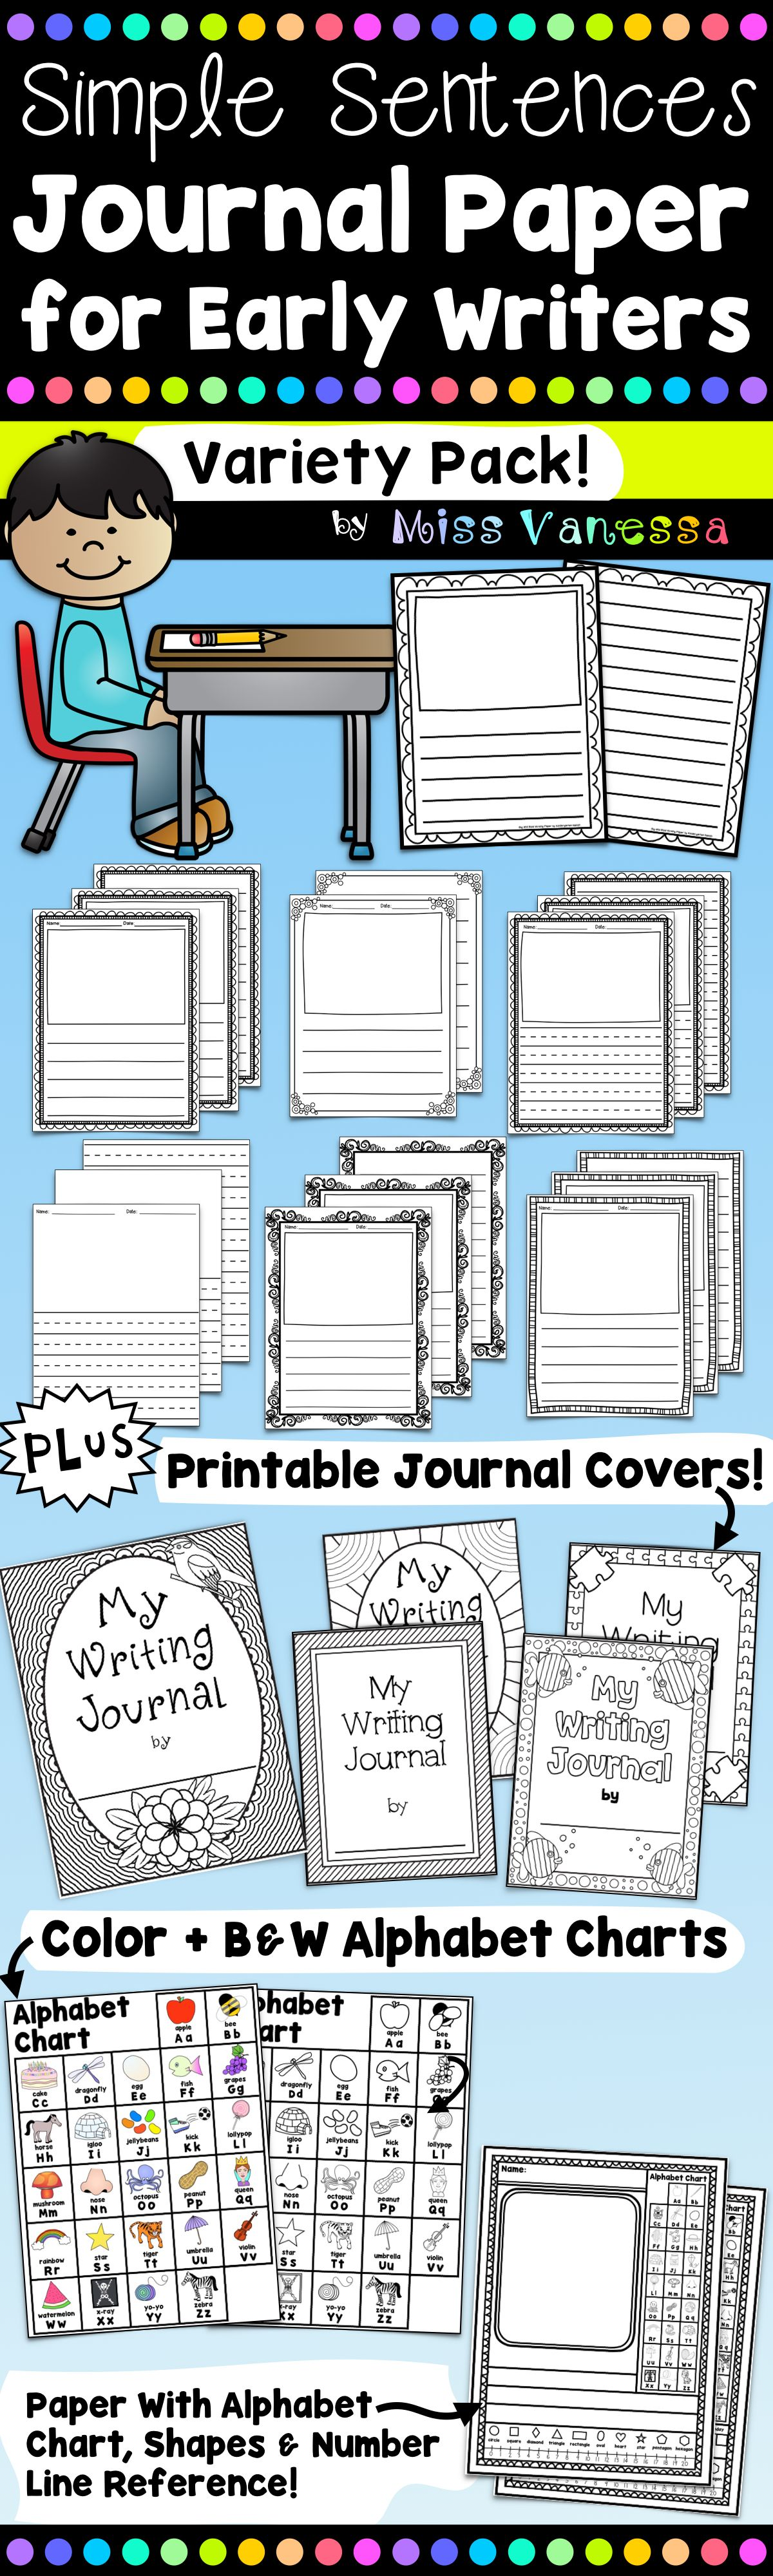 Journal Paper Journal Covers And Alphabet Charts